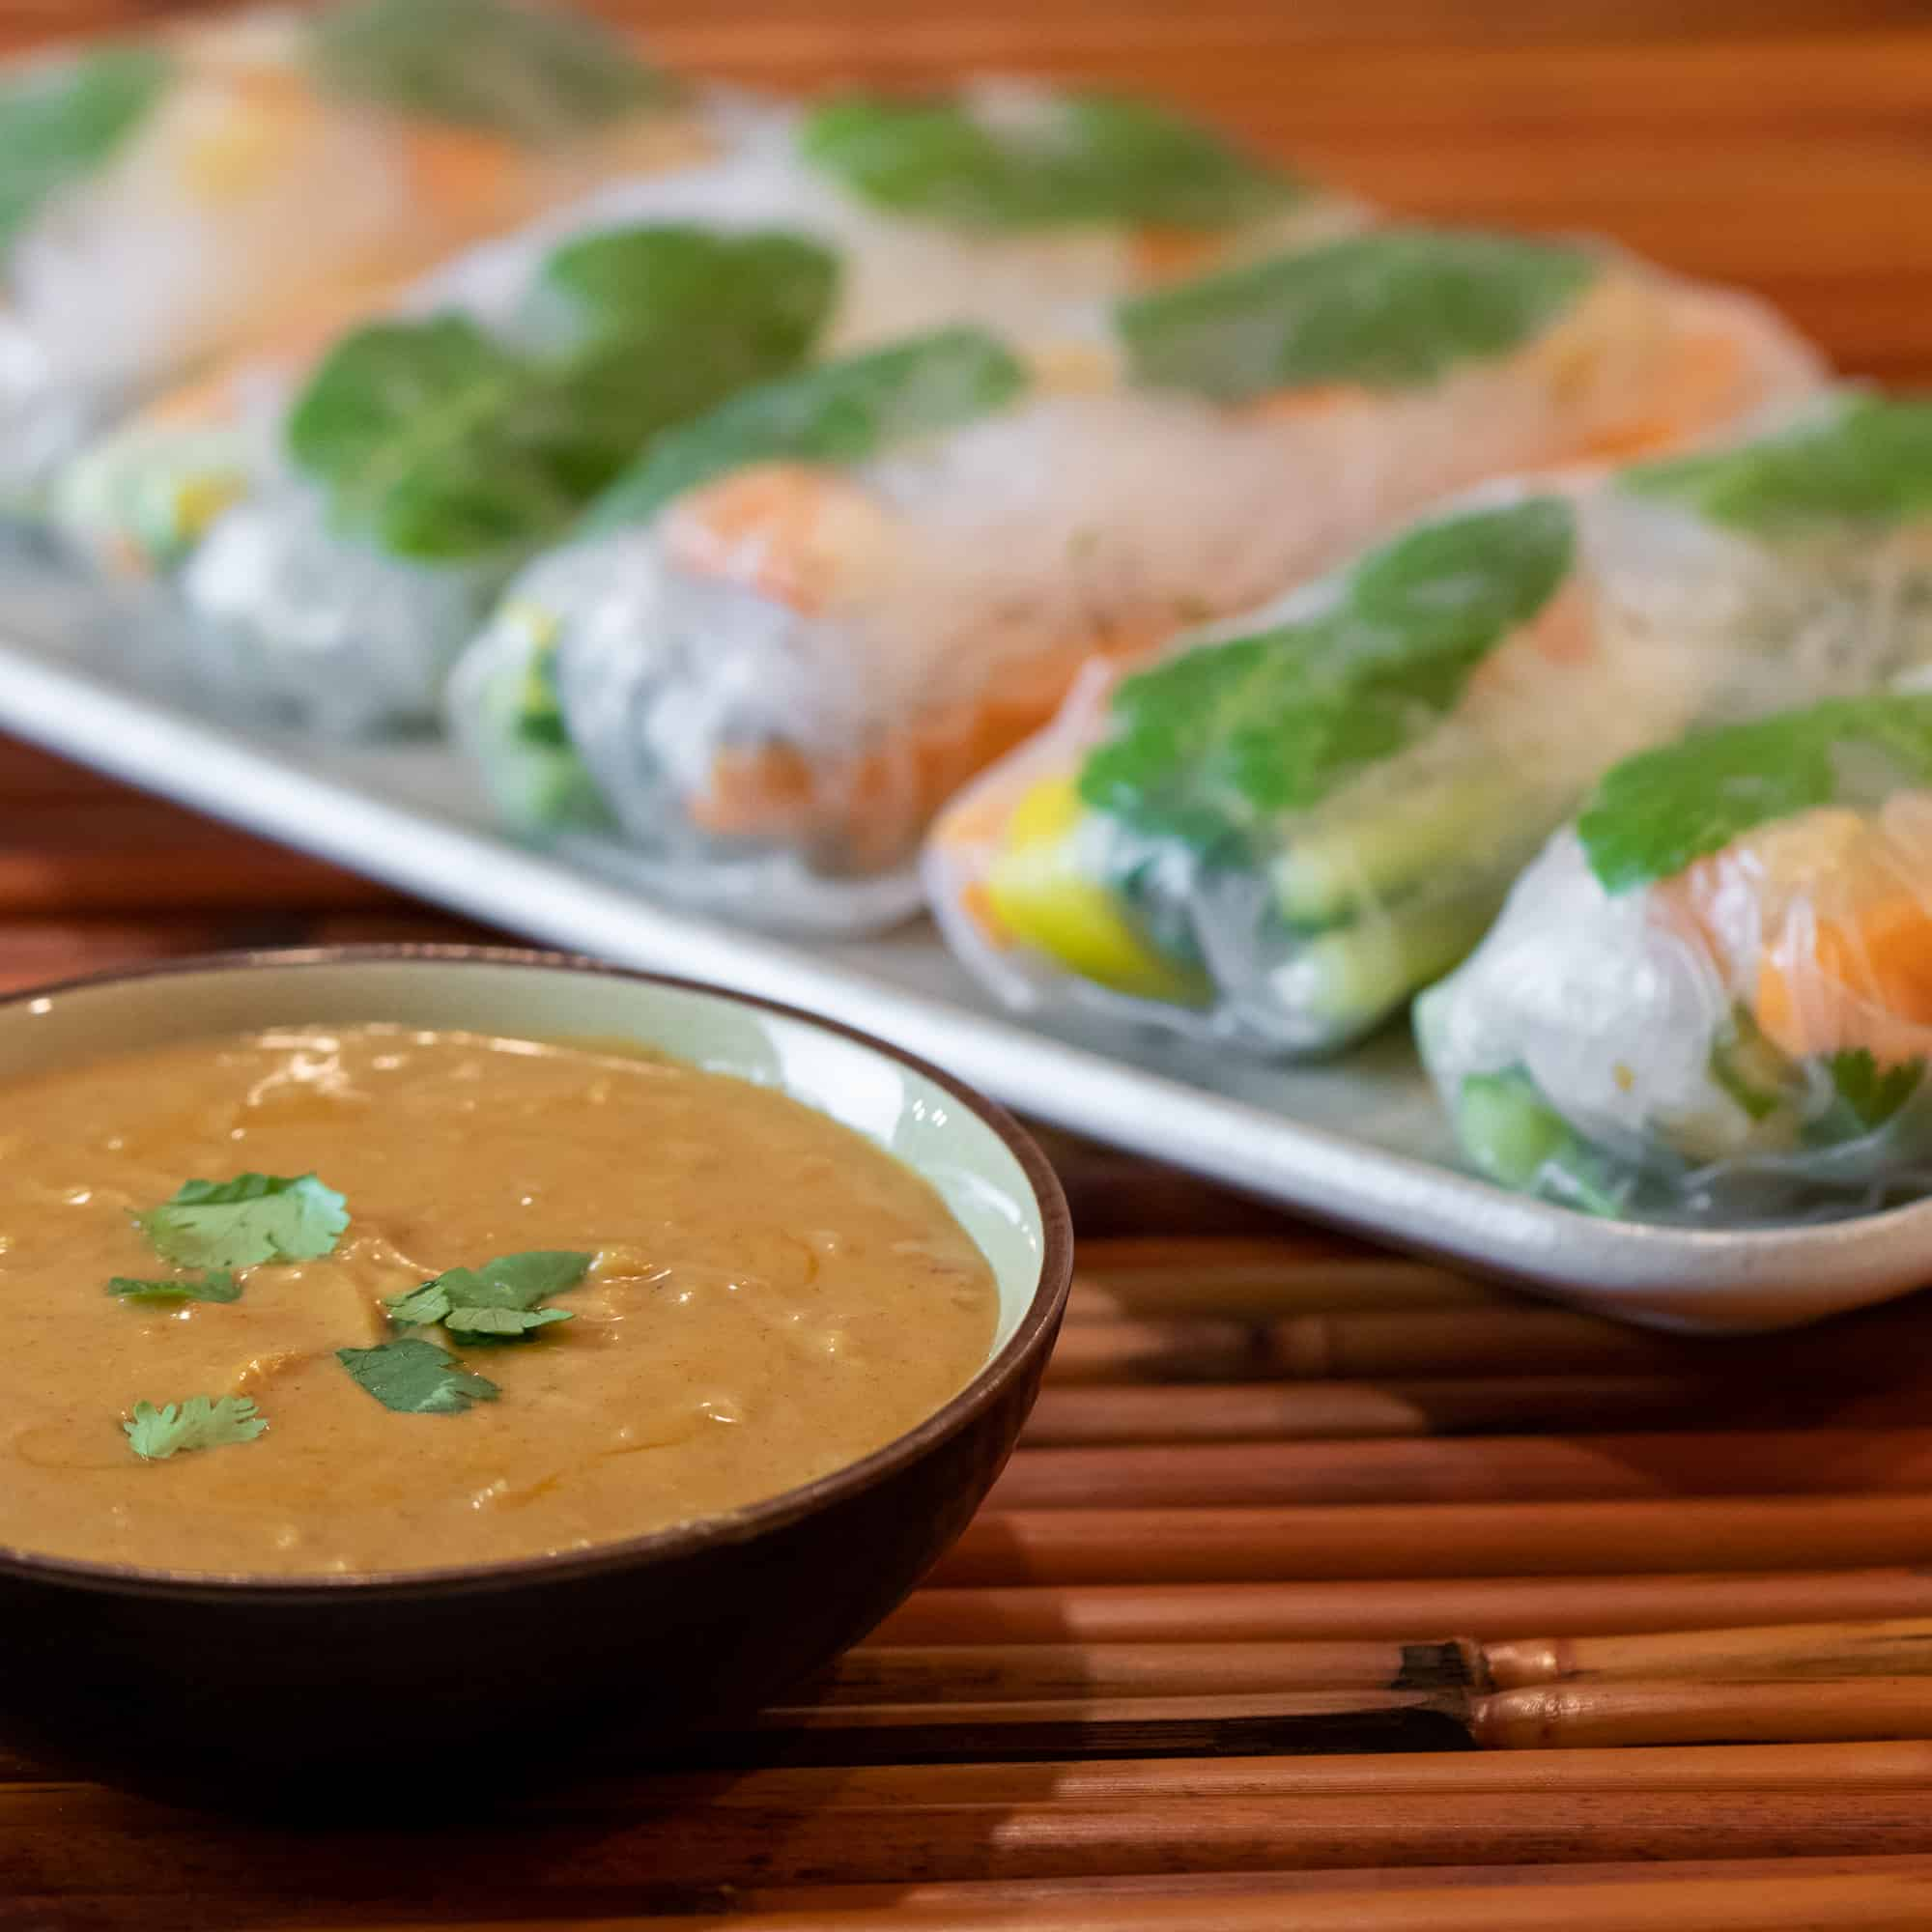 A bowl of peanut sauce with a plate of Thai cold spring rolls